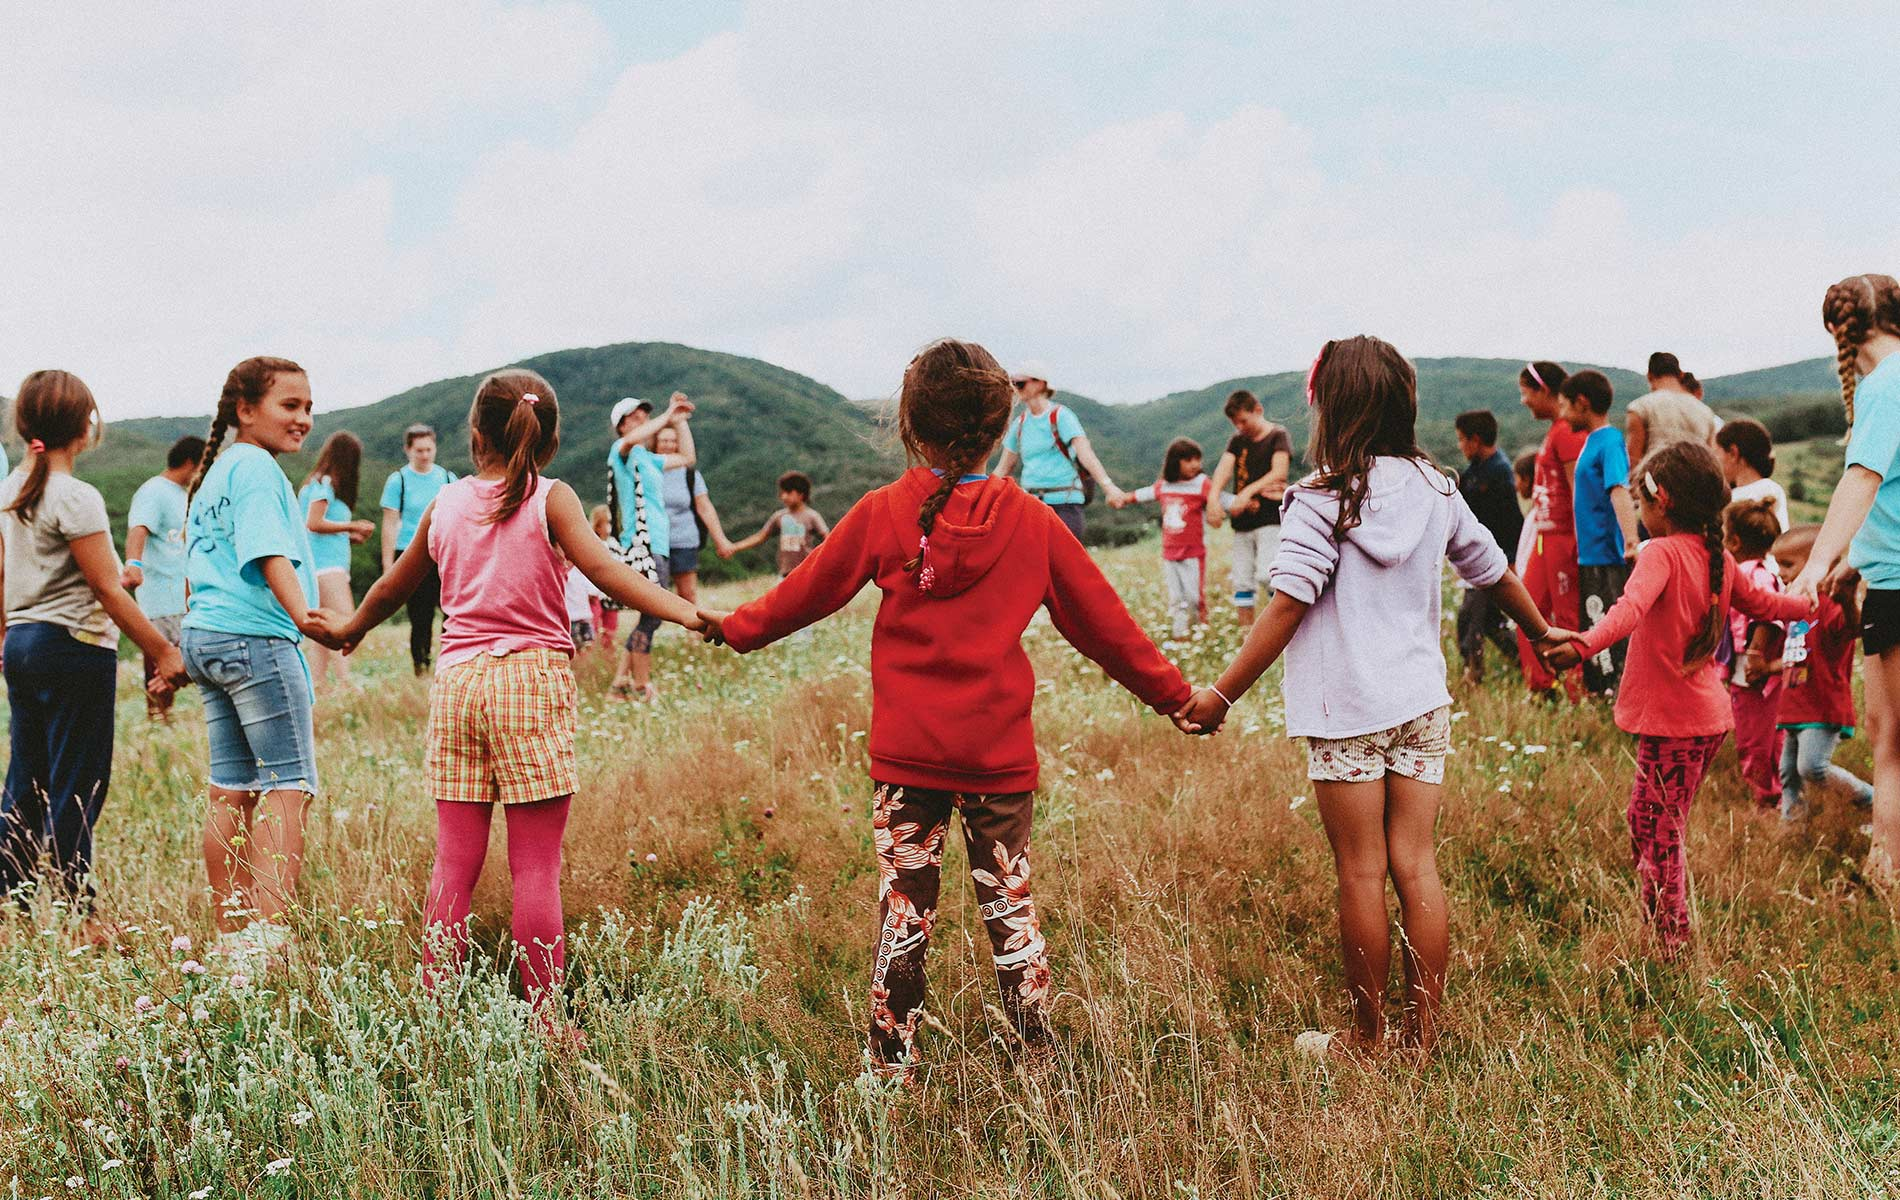 Children in a field holding hands